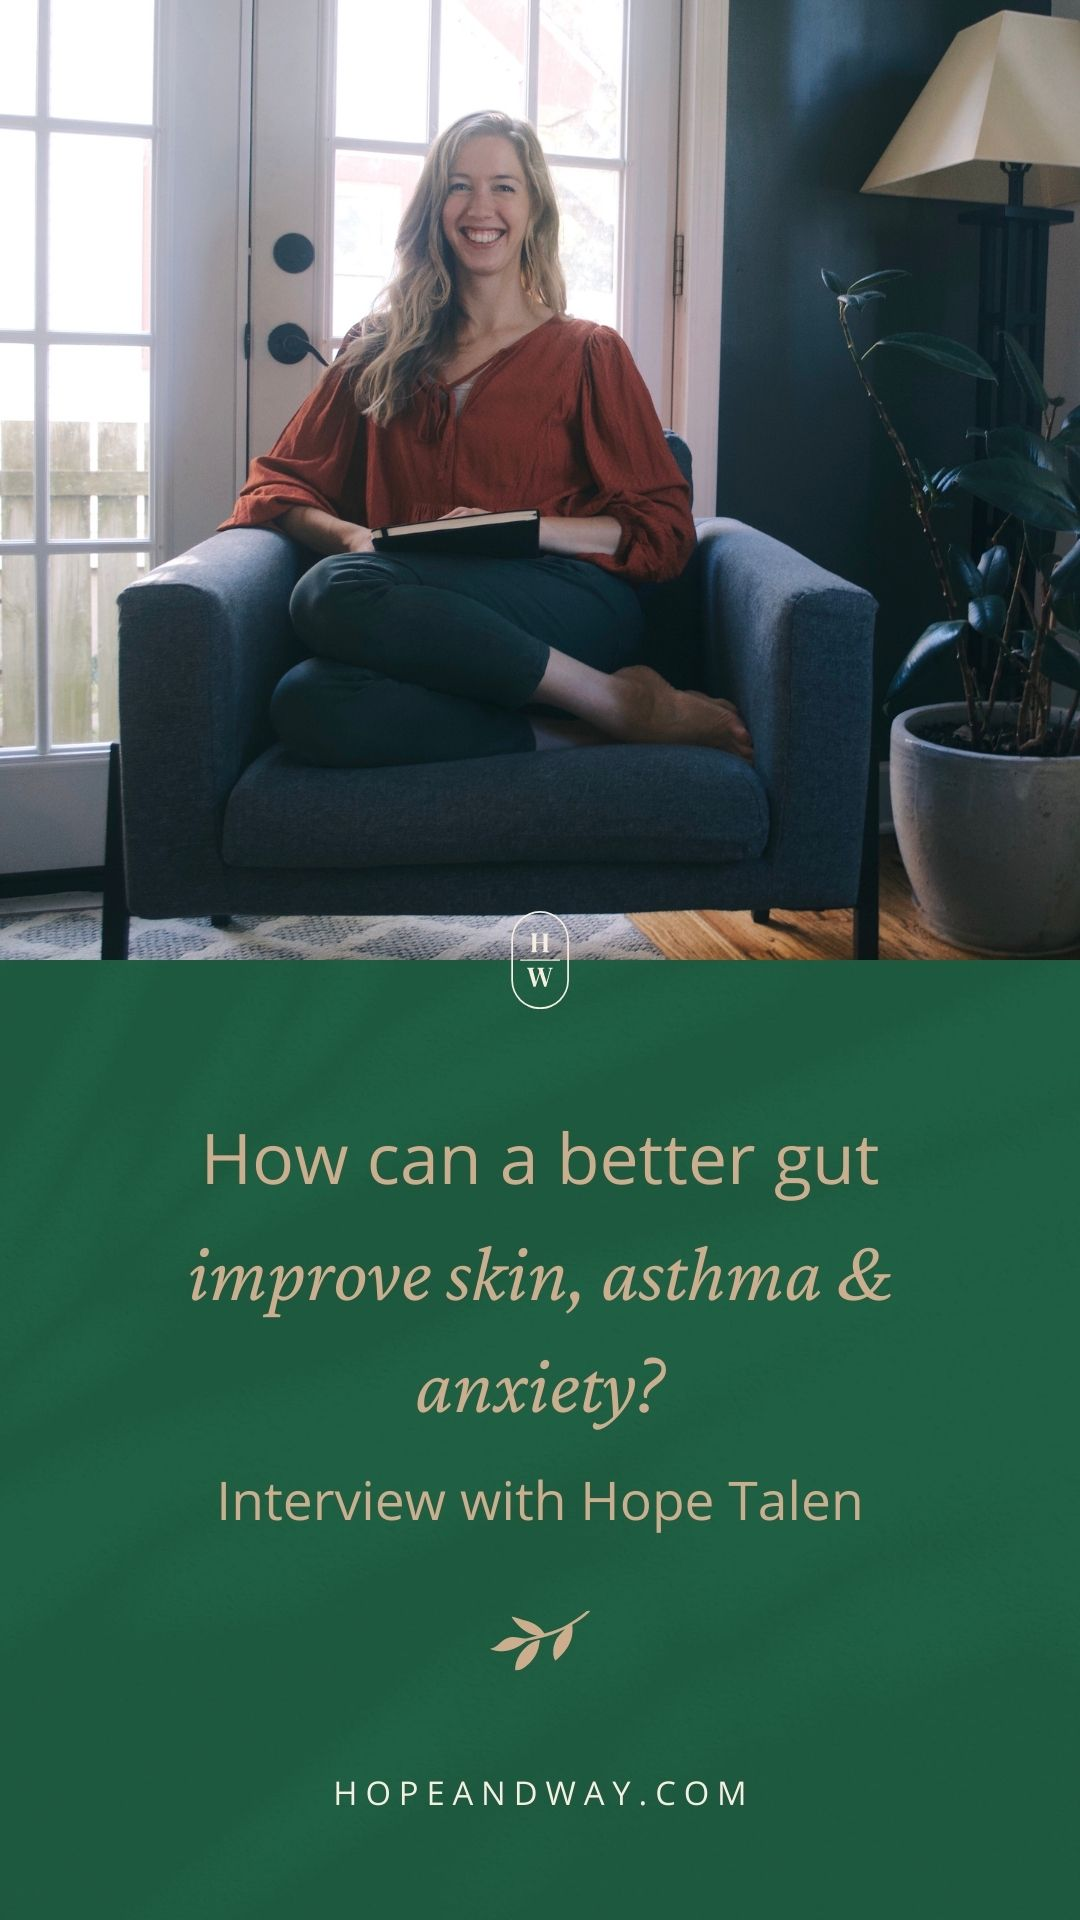 How Can a Better Gut Improve Skin, Asthma, and Anxiety? Interview with Hope Talen